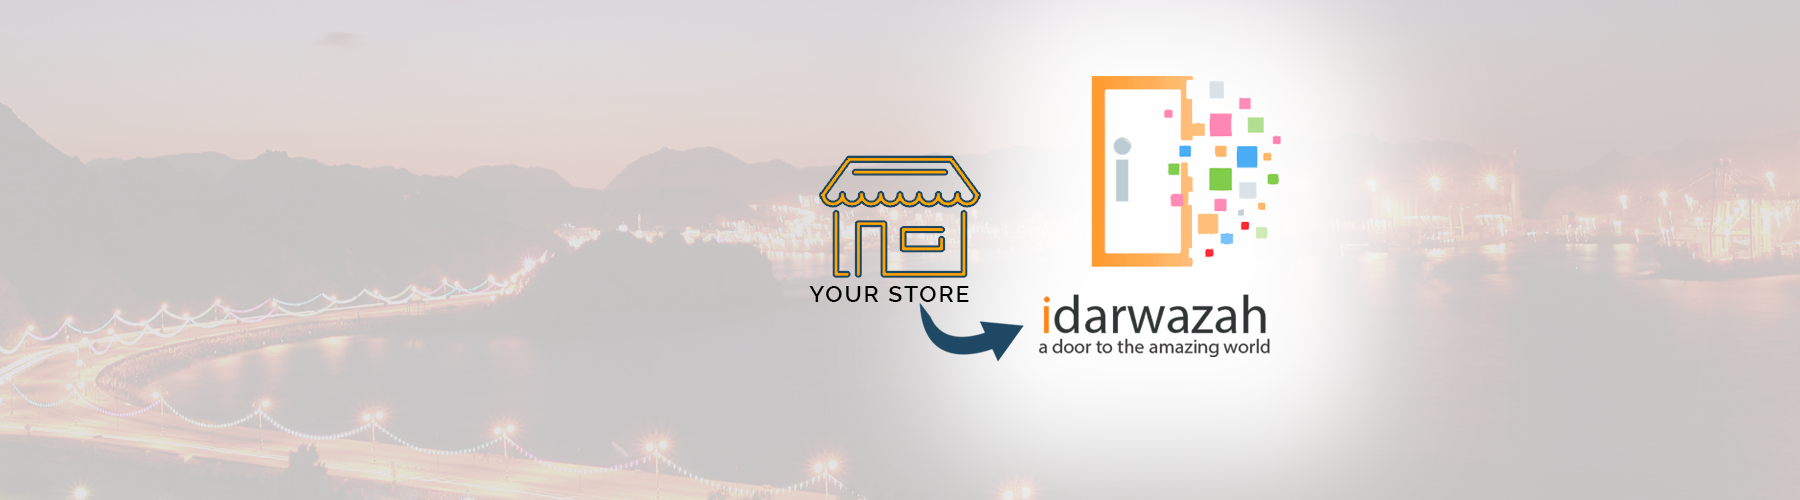 register your store with idarwazah